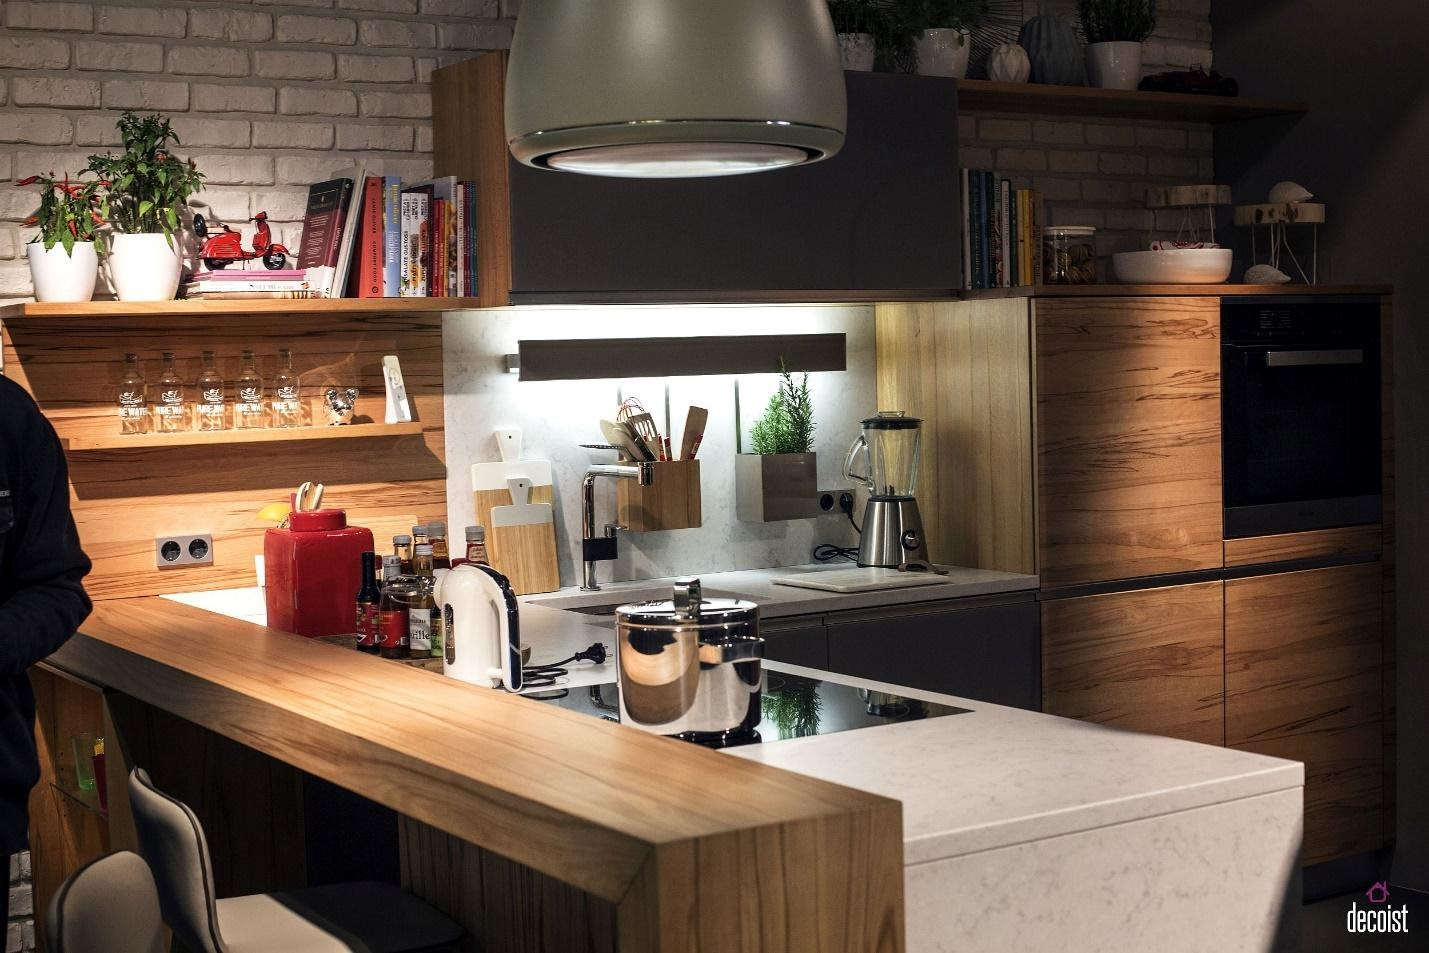 10. Trendy Wooden Breakfast Bar by simphome.com